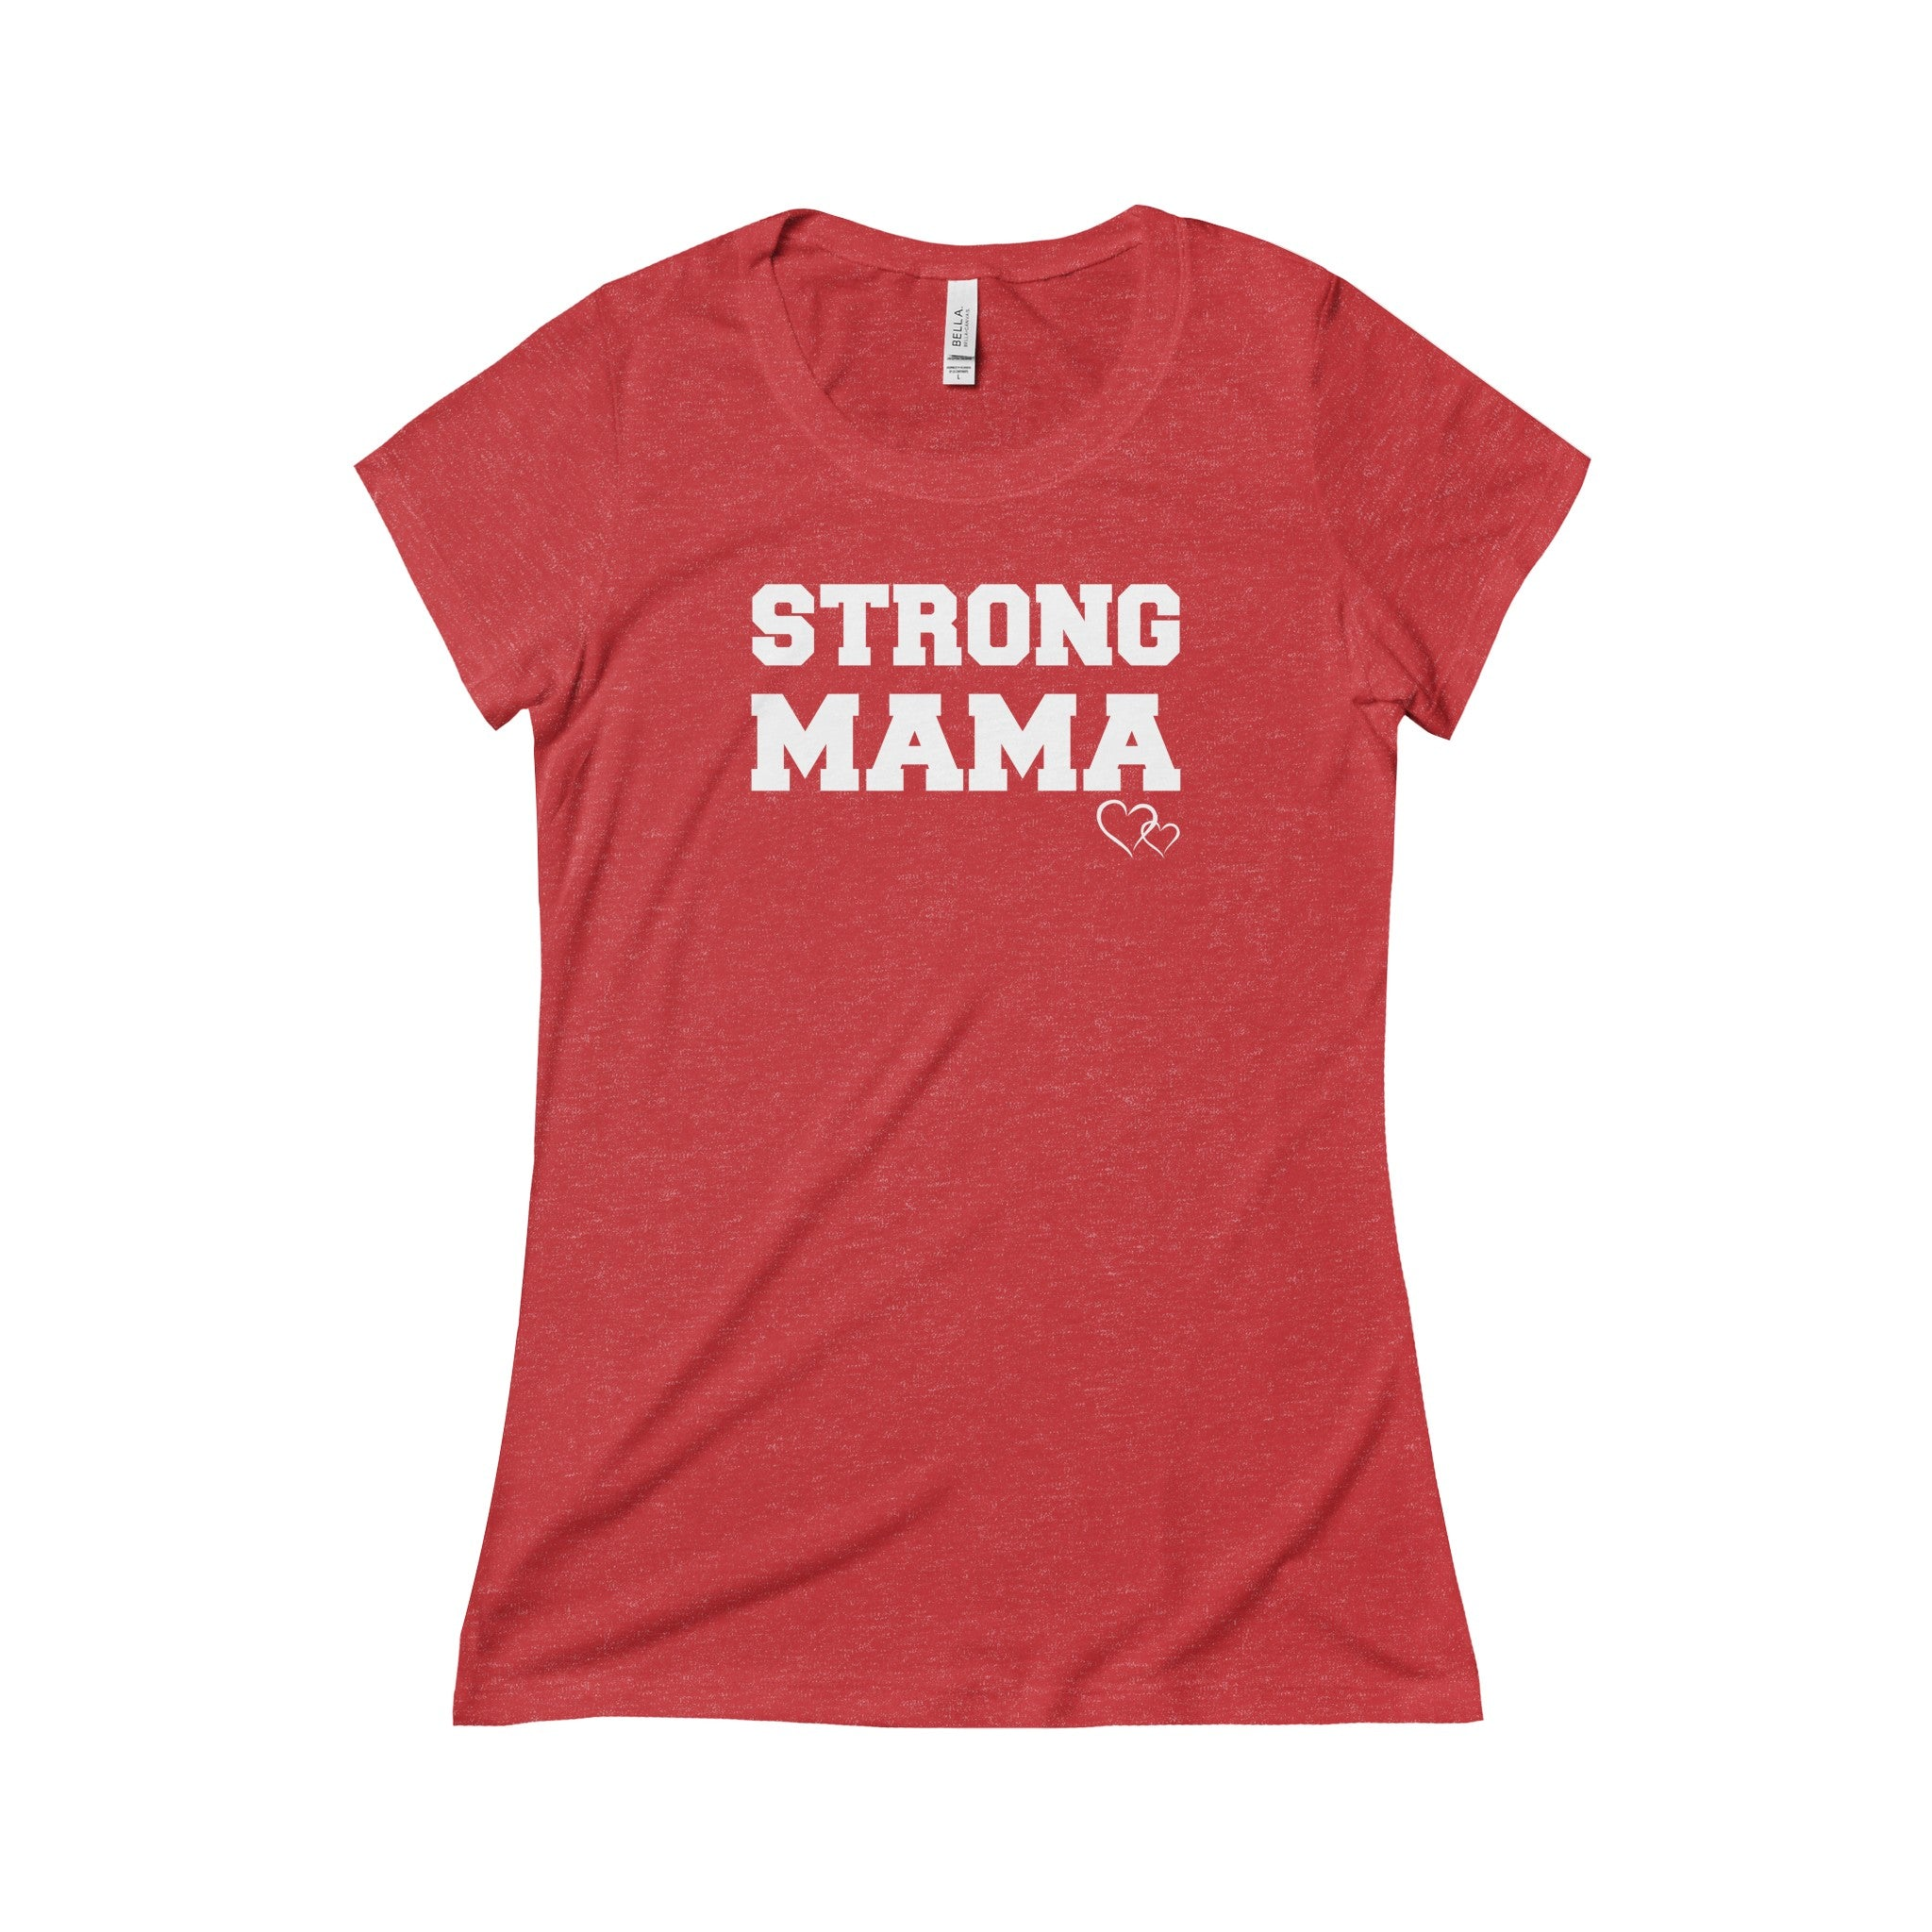 STRONG MAMA - Triblend Short Sleeve